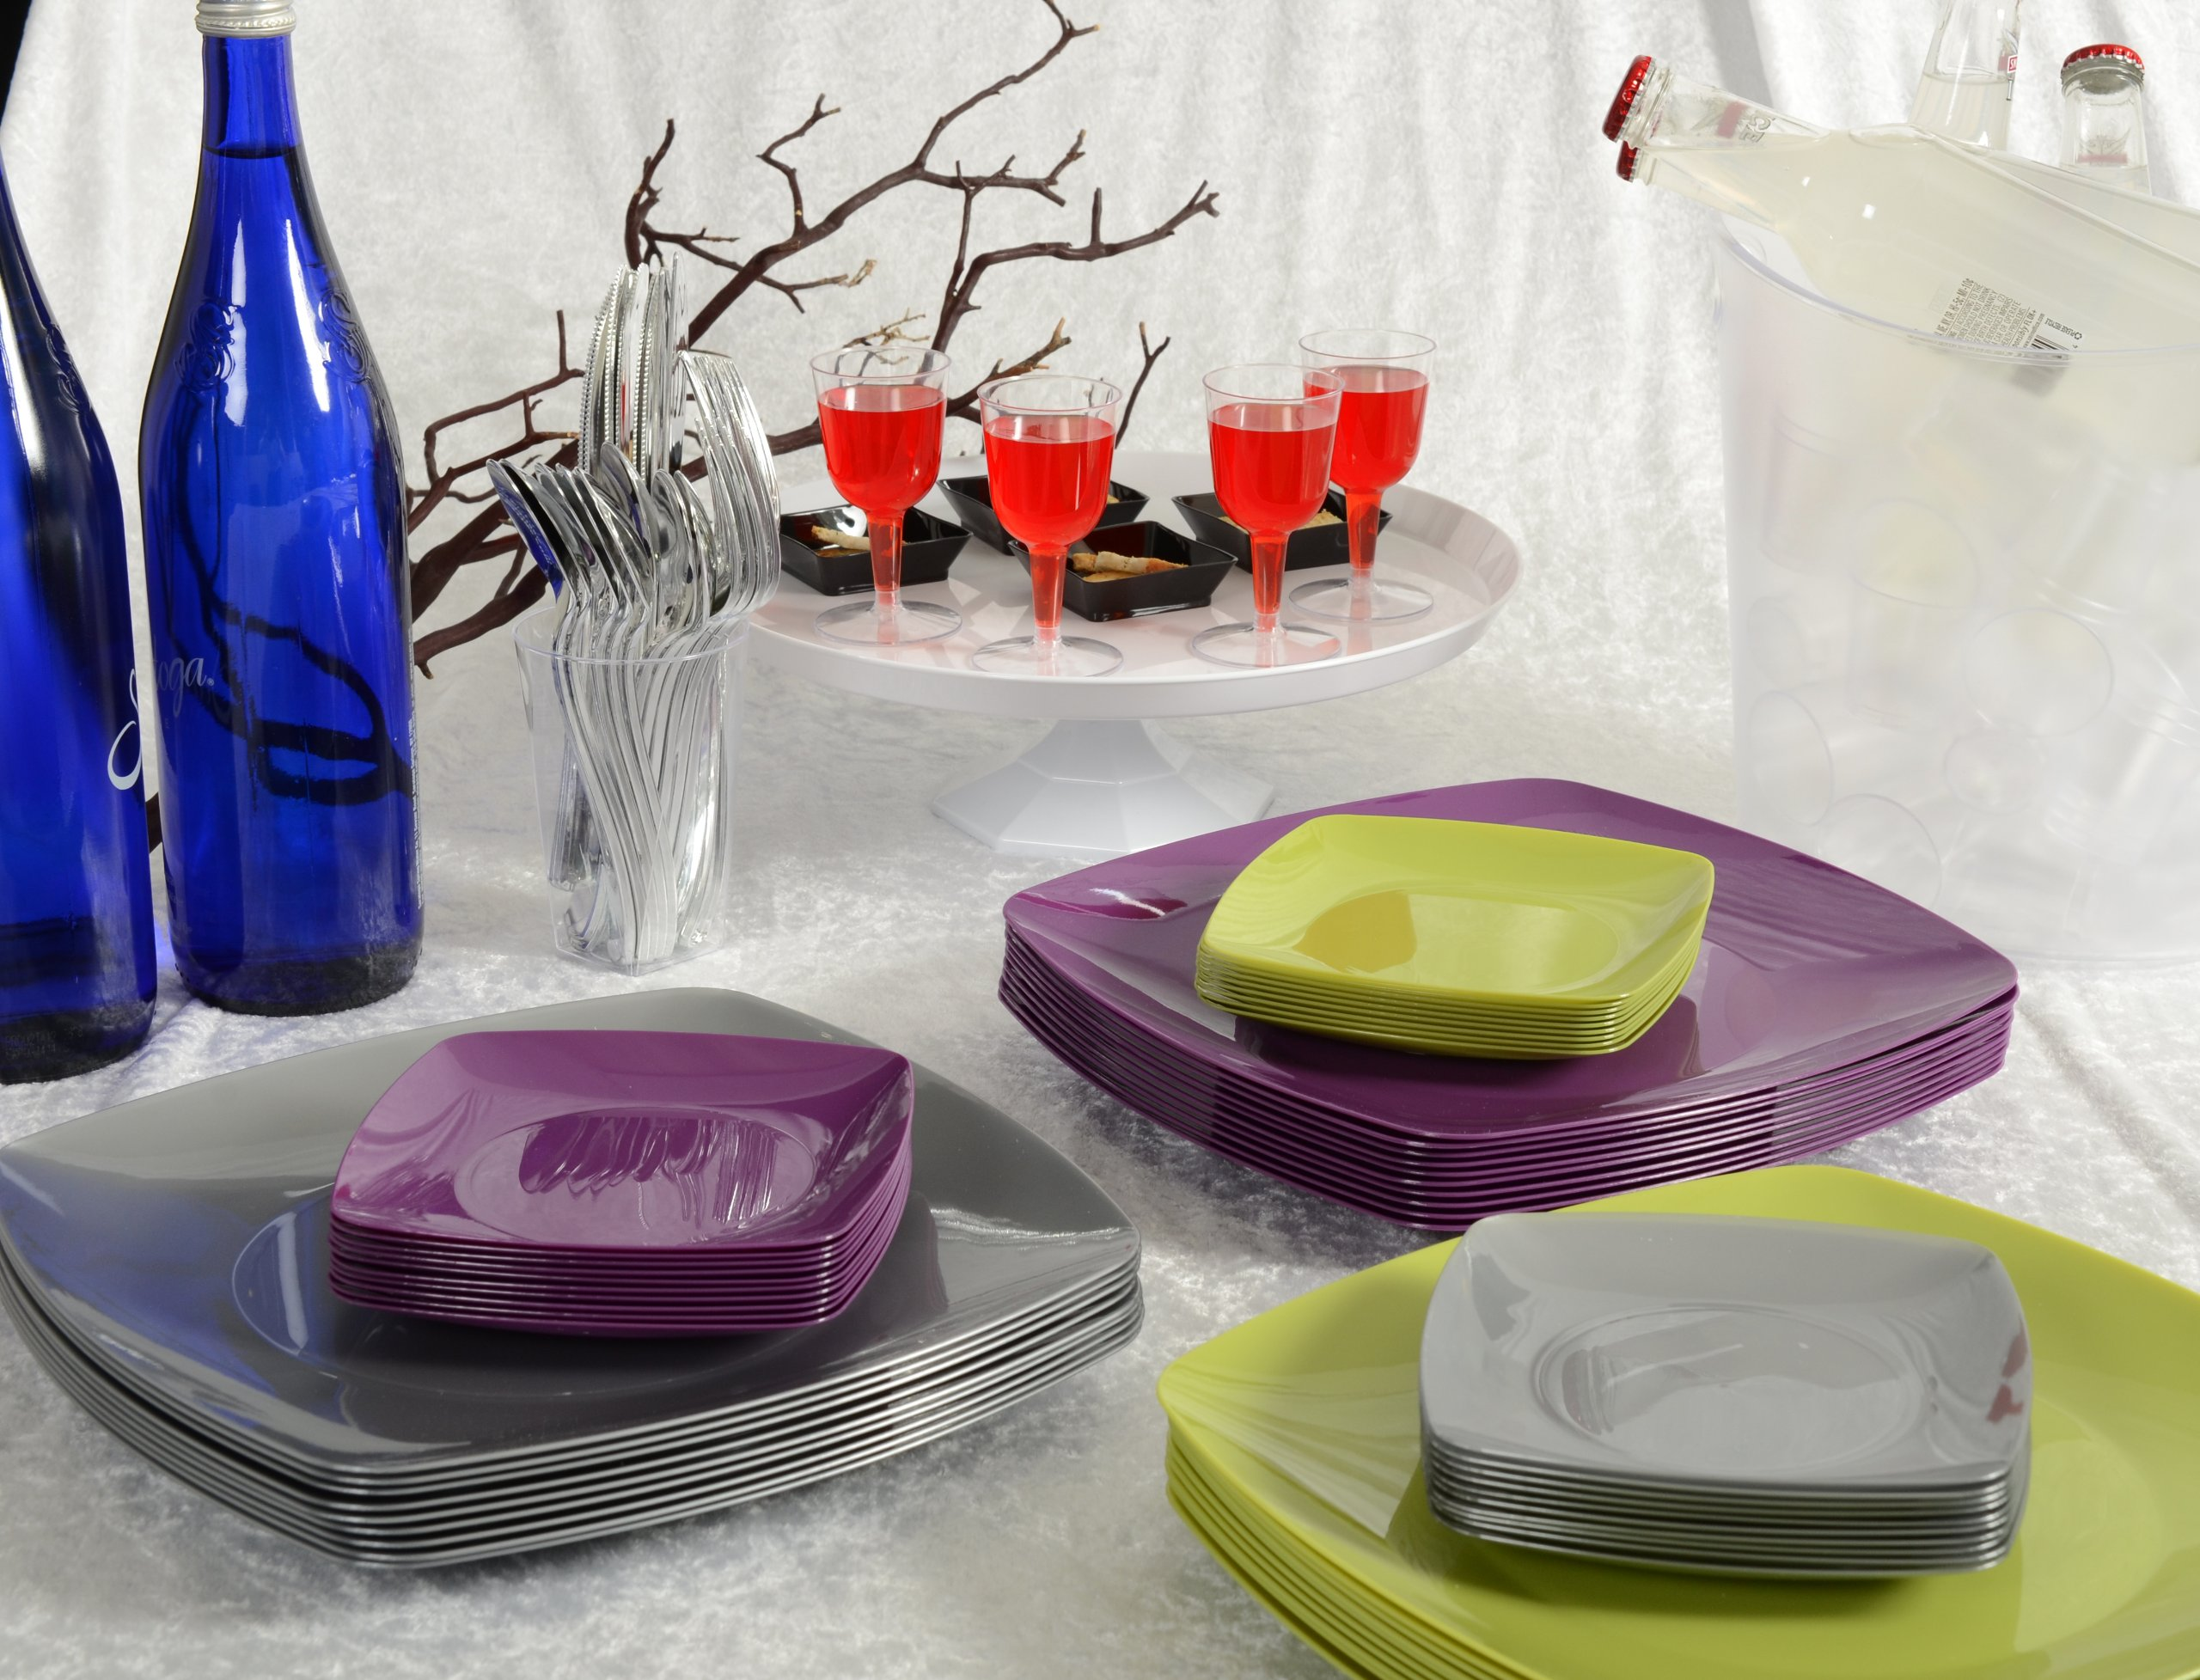 Renaissance 120-Piece Rounded Square China-Like Plate, 7.5-Inch, Purple, Case of 12 by Renaissance (Image #2)